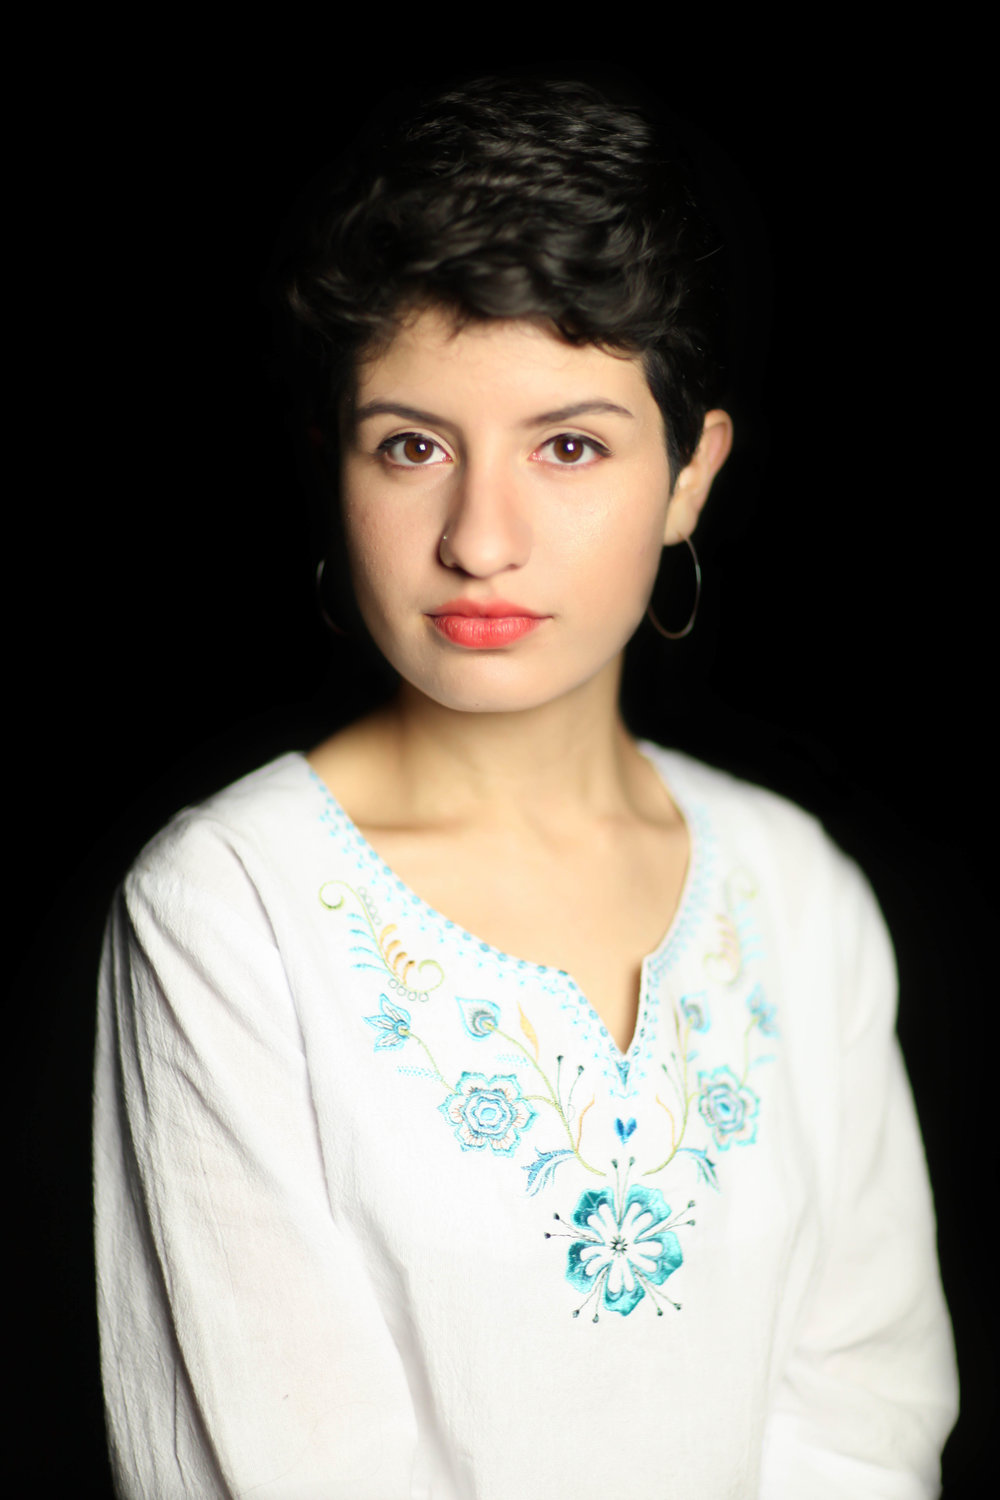 """Maria was born in Ecuador and moved to the United States with her parents at the age of 5. She an advocate in the community for social change and justice in the Latinx community and identifies as being queer.     """"Being a queer woman of color has opened me up to a beautiful, intellectual community of people who face similar struggles as me.    Being Latino [in America], you are always conflicted between two different things--because you are in America, you are not fully in your Latino community, and you are not fully American or white. You are always in between two [communities], you are navigating two different things. And the same in being bisexual, you are navigating between two different preferences. Like do I want to date a man? Do I want to date a woman? So, for me, anyway, those two things are constantly in conflict.    I am always in this in-between with everything I am. That is just who I am. In terms of geography, I'm from New York so I identify heavily with New York, but I am in Ohio right now and I have to be in the community here. There are a lot of places in my identity where I am in the in-between, so it has been a lot to traverse—sort of figuring out where I am, how I am going to navigate this constant journey between different places, different identities, different ideas. But, in the end, it's beautiful. And I just feel very fluid, which is great because as much as I love having an identity, I just love to fluidly be in between...and I'm this and I'm that. But I don't always have to identify."""""""